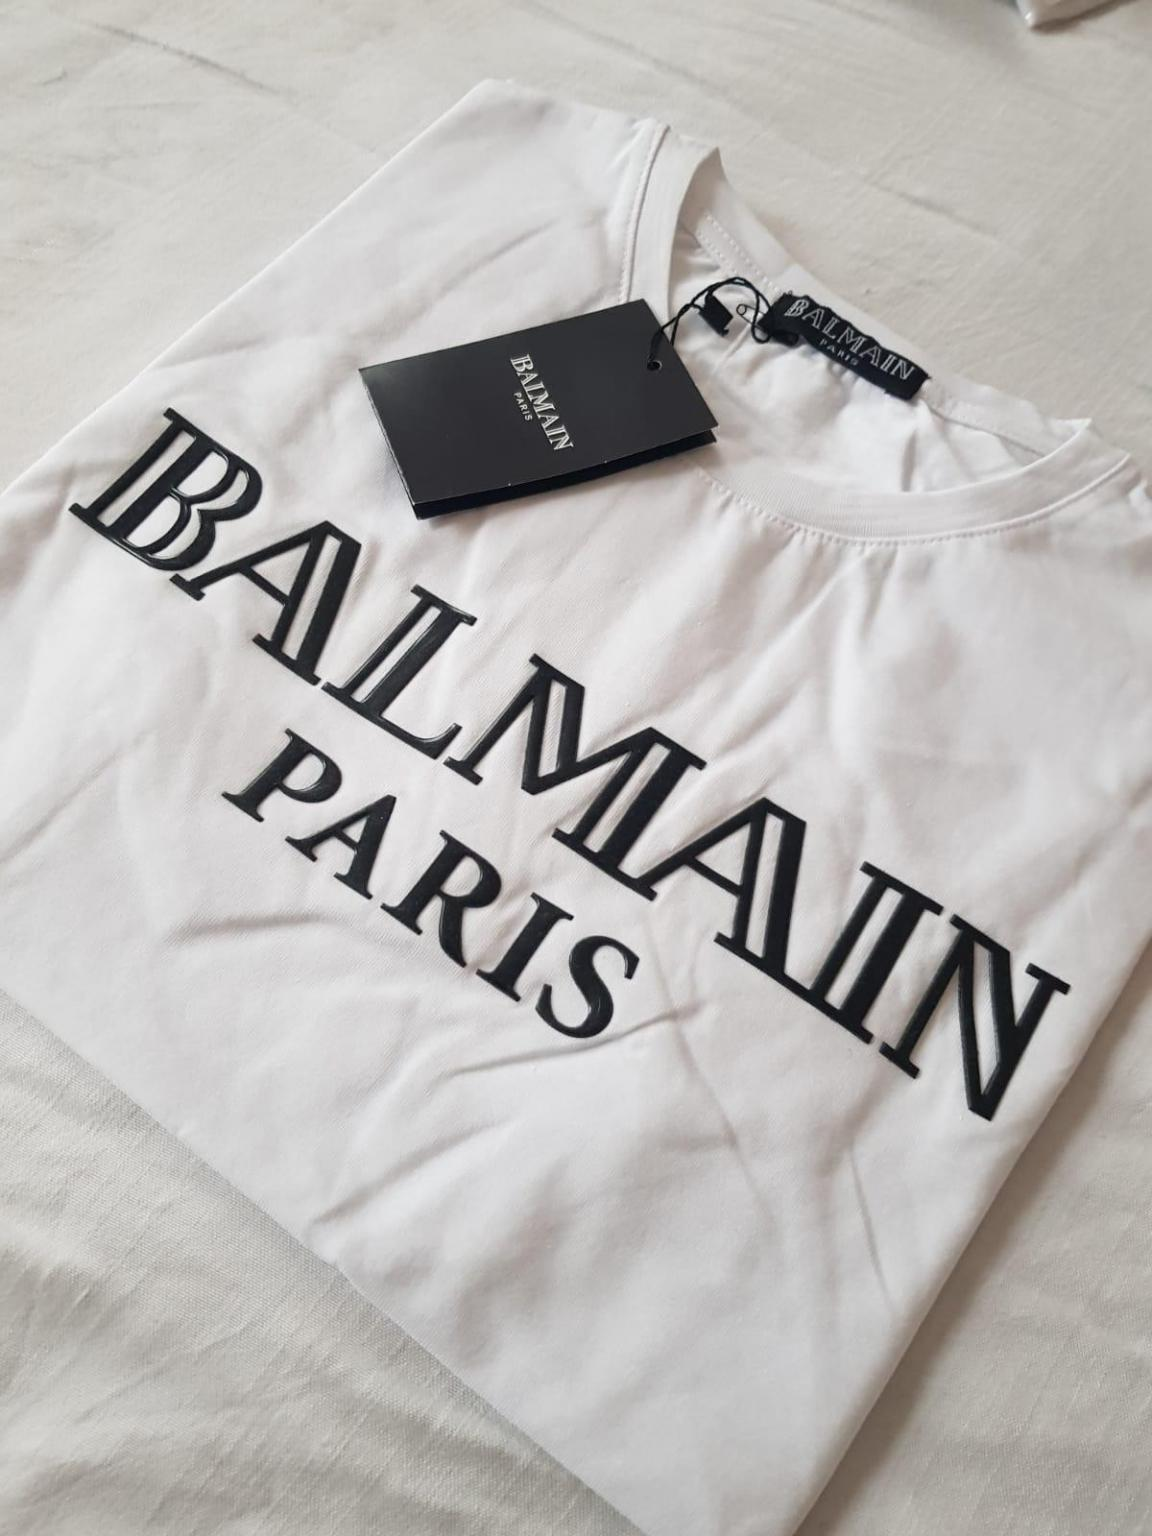 45af29058 Balmain Size SMALL Tshirt Brand New FENDI in SW1A London for £45.00 for sale  - Shpock